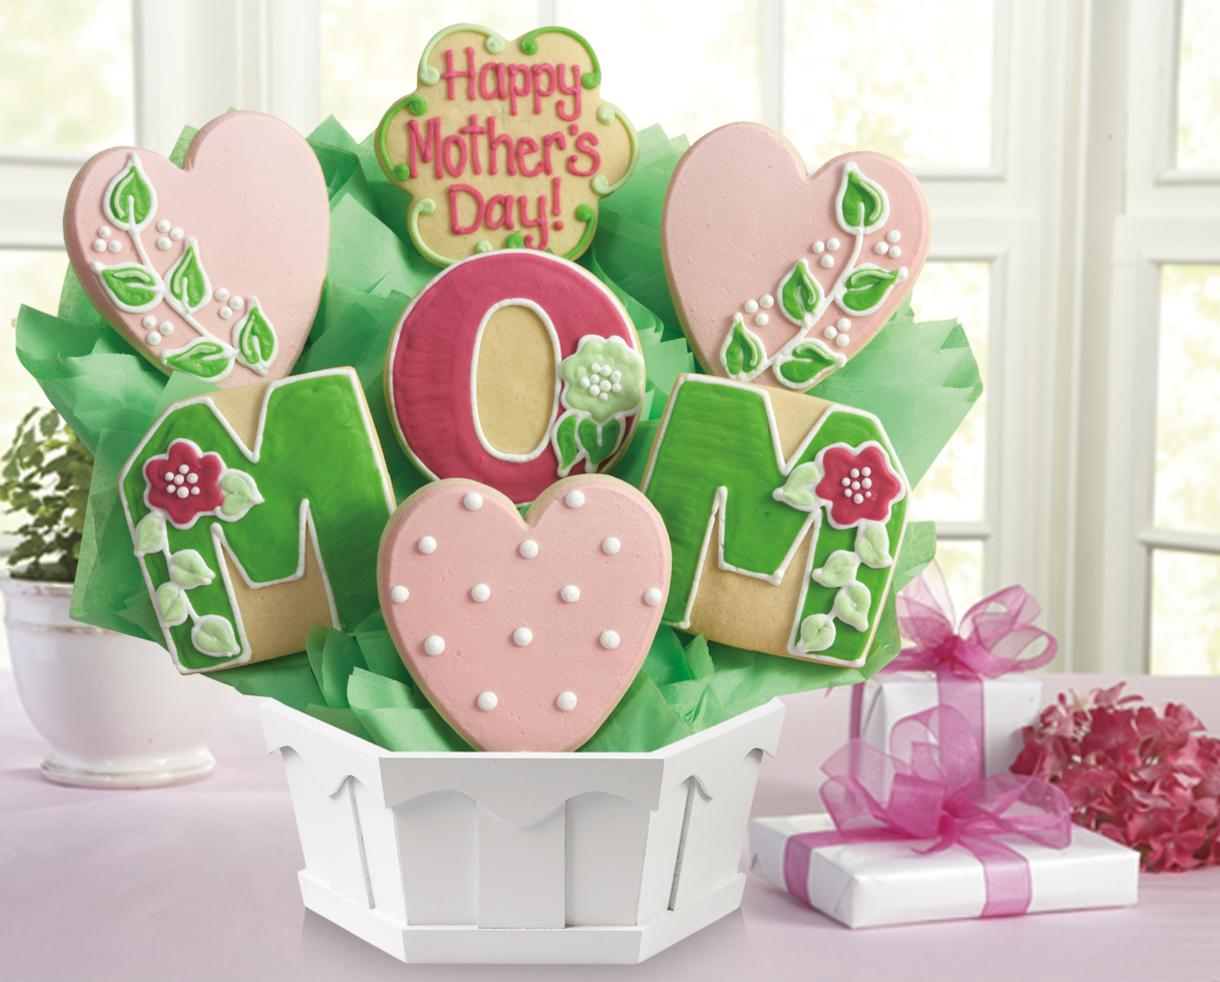 20% Off Mother's Day Gifts From Cookies by Design